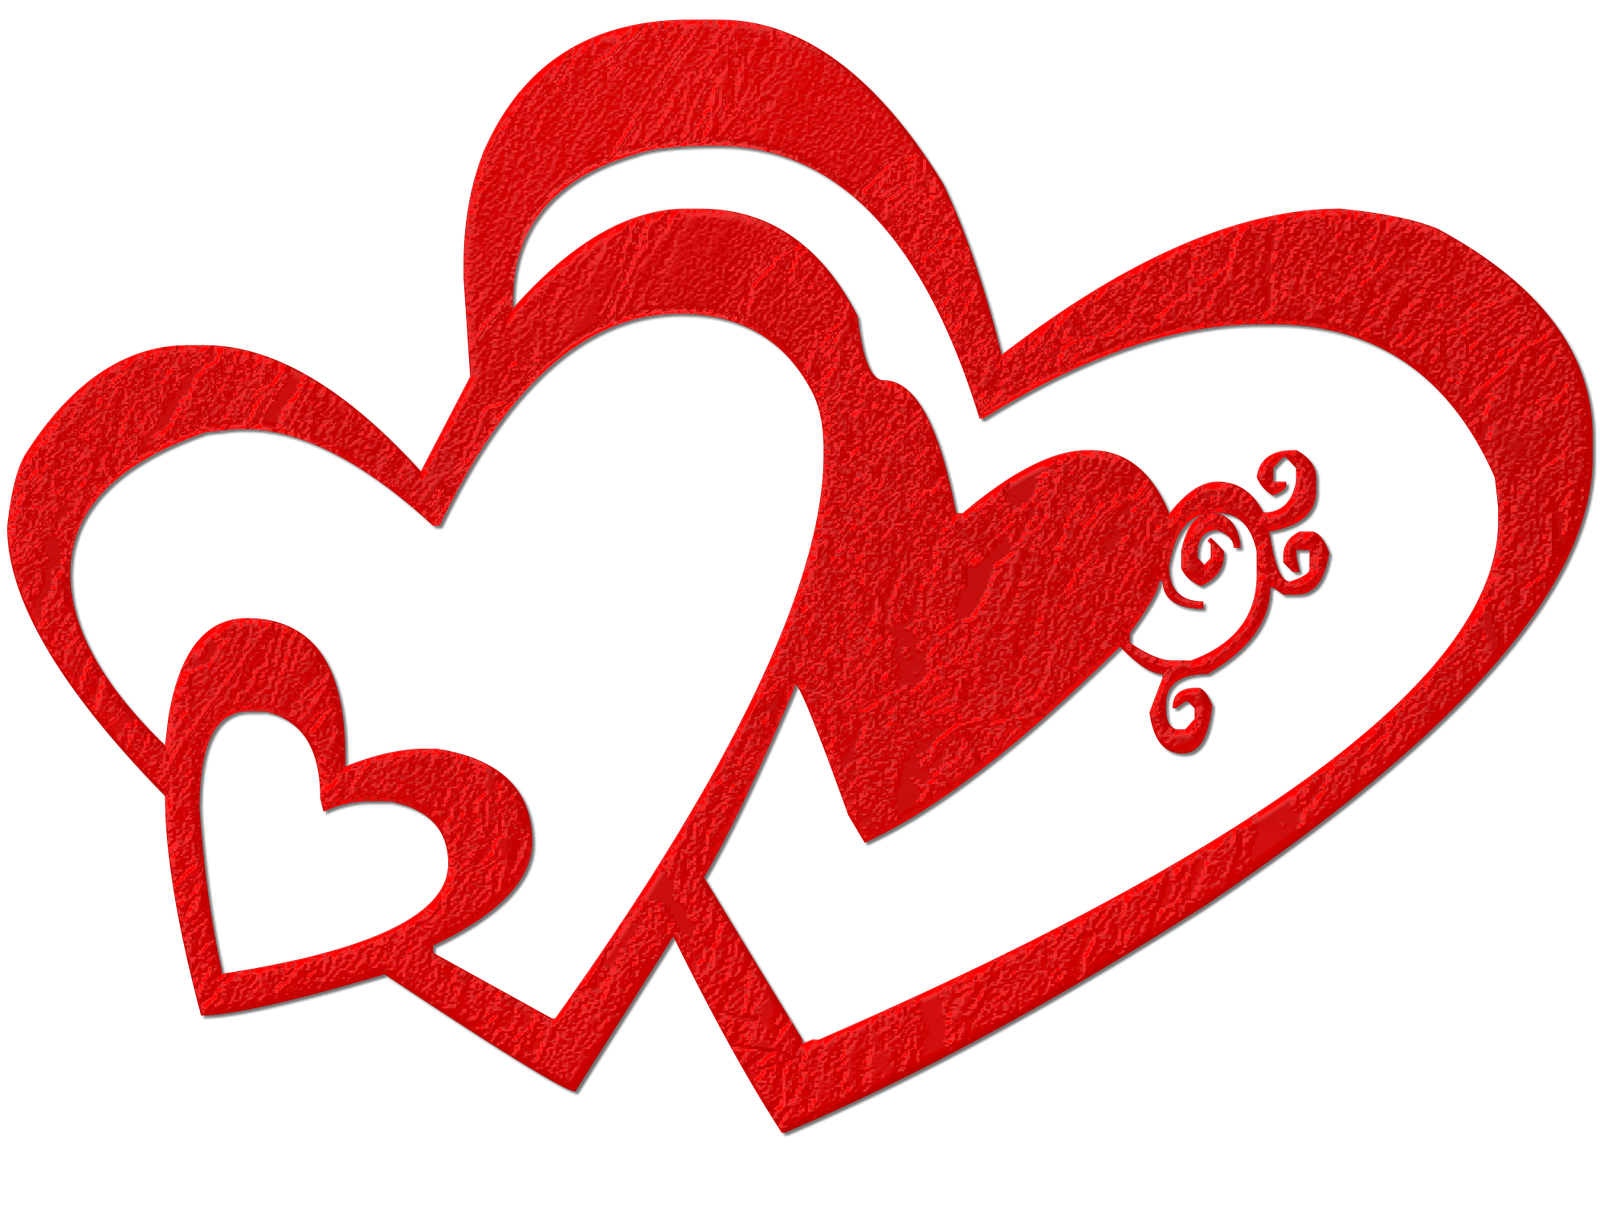 Double heart clipart